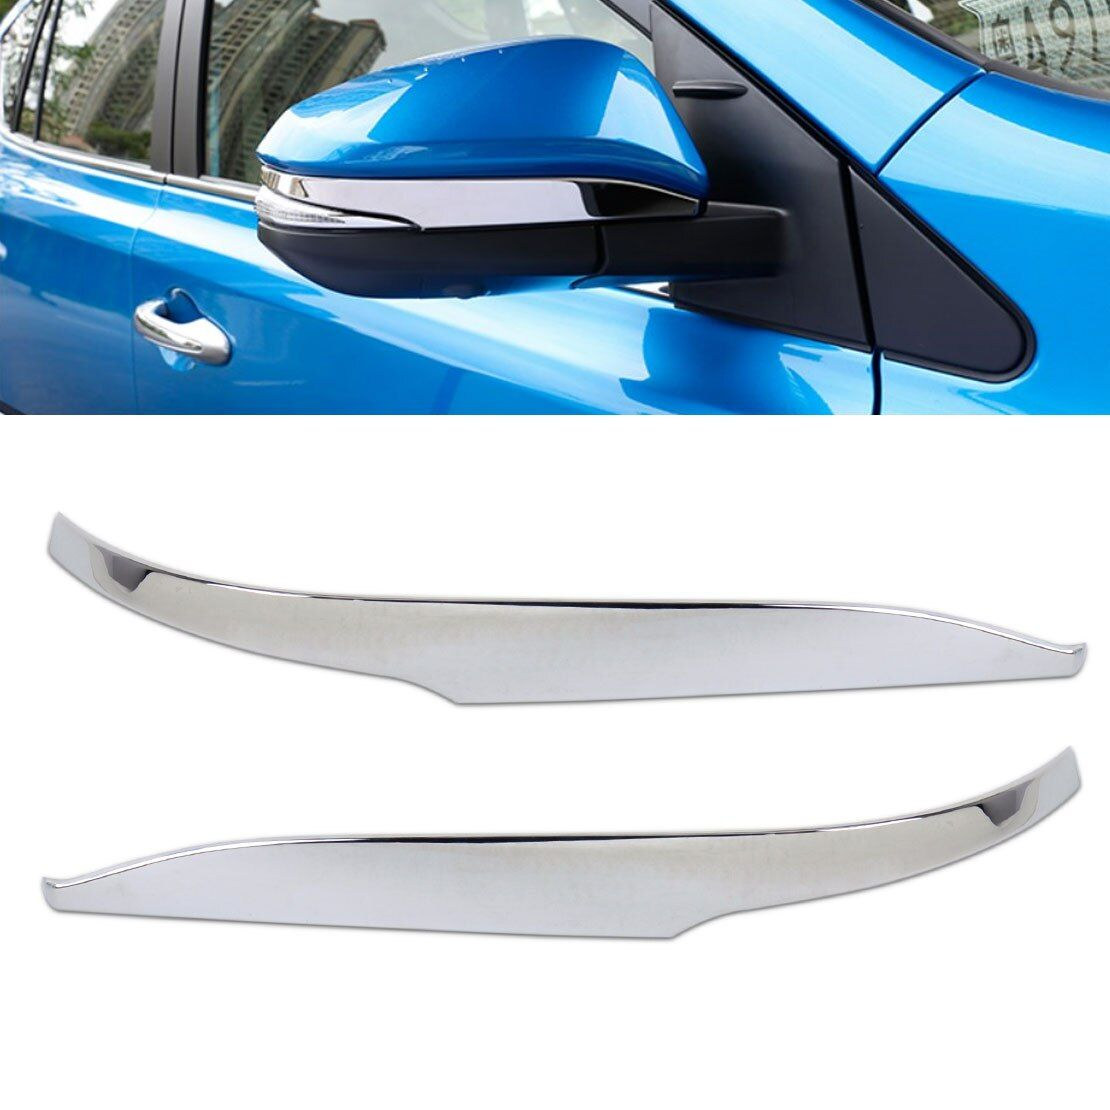 CITALL 2Pcs Car-styling Chrome Side Rearview Door Mirror Strip Cover Trim Cap Molding for Toyota RAV4 2013 2014 2015 2016 2017